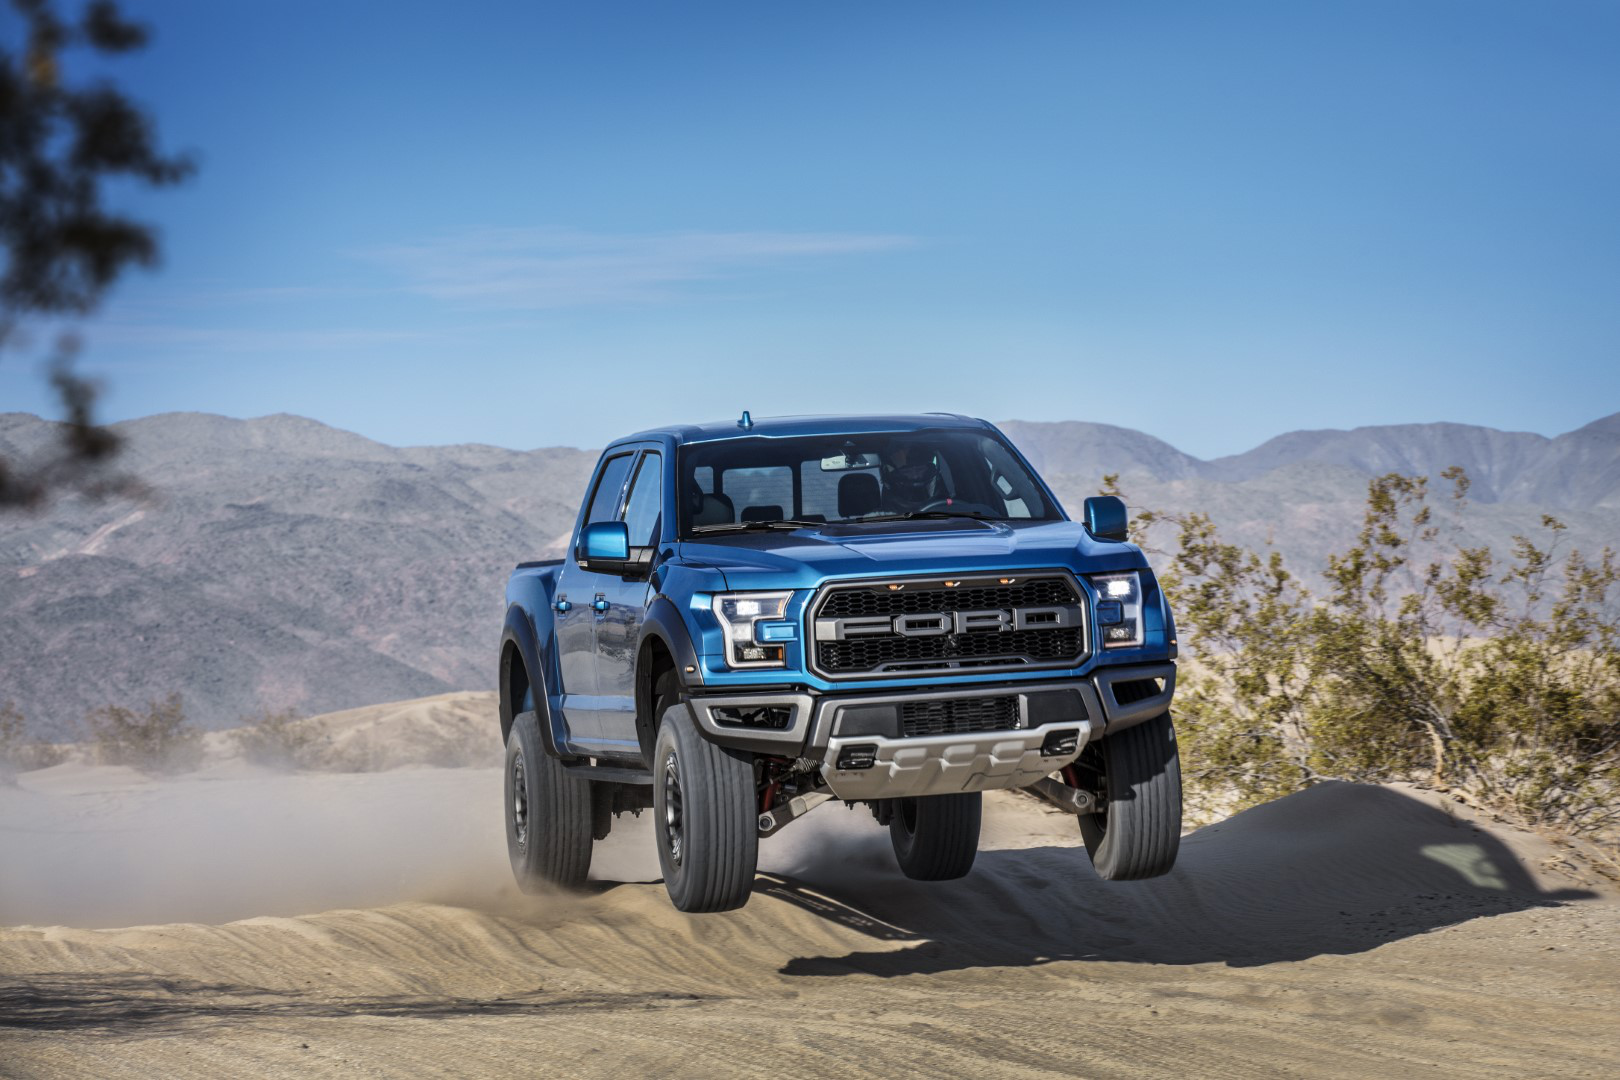 2019 Ford F 150 Raptor Debuted With All New Features Big Blue Jacked Up Chevy Truck F150